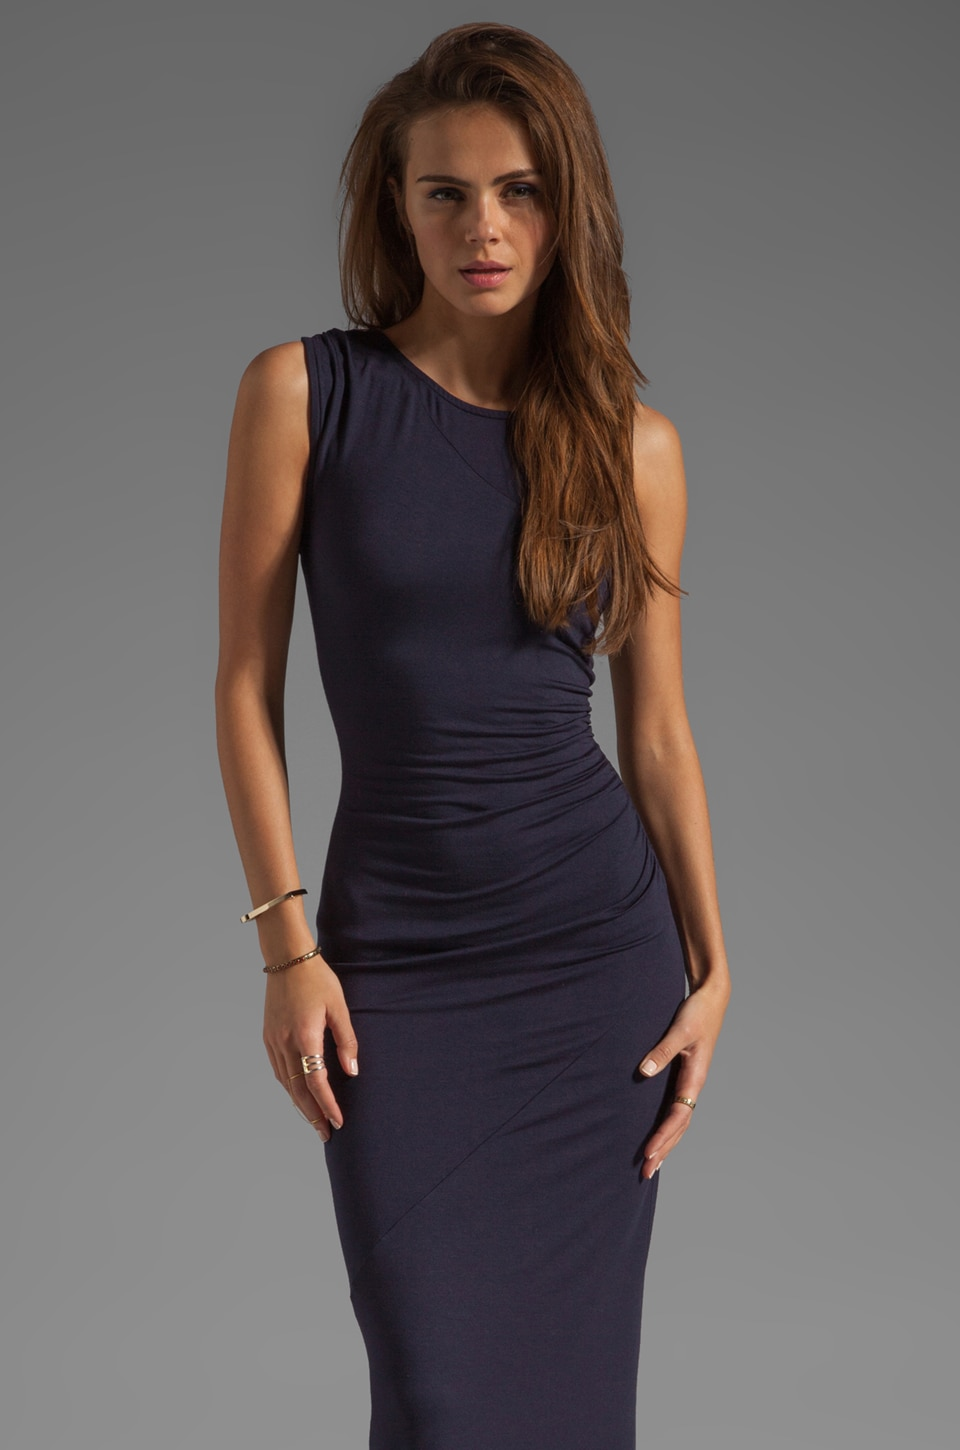 Kain Tarin Dress in Navy